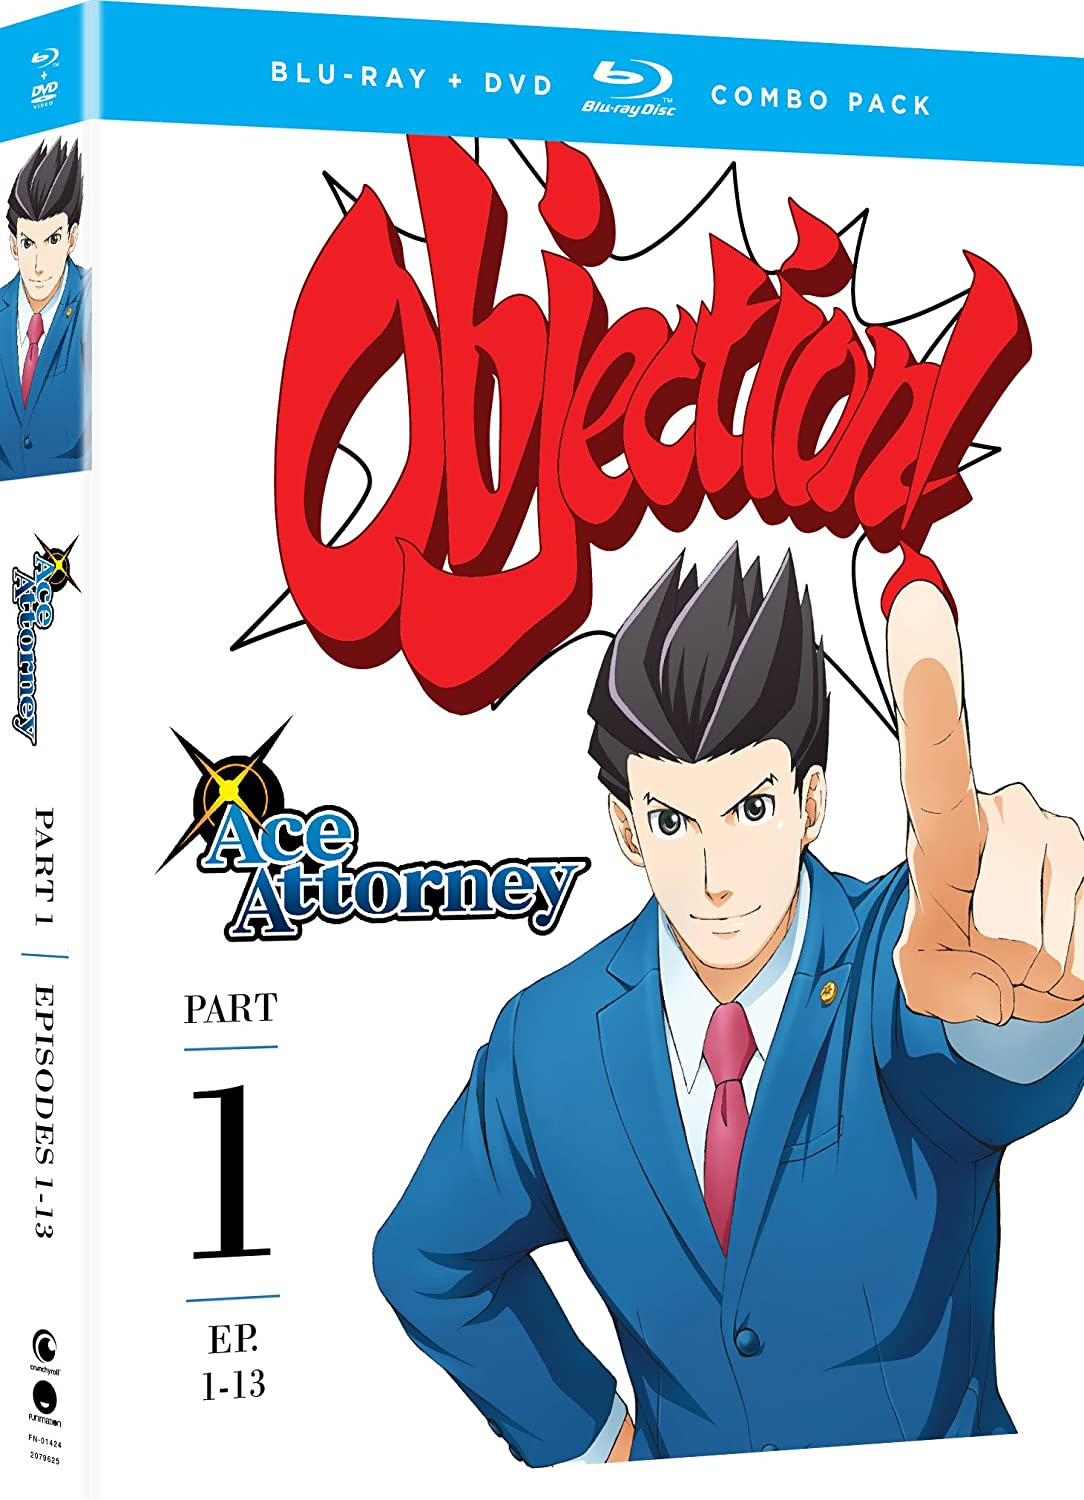 Ace Attorney - Part One [Blu-ray] Eric Vale Lindsay Seidel Colleen Clinkenbeard Christopher Wehkamp